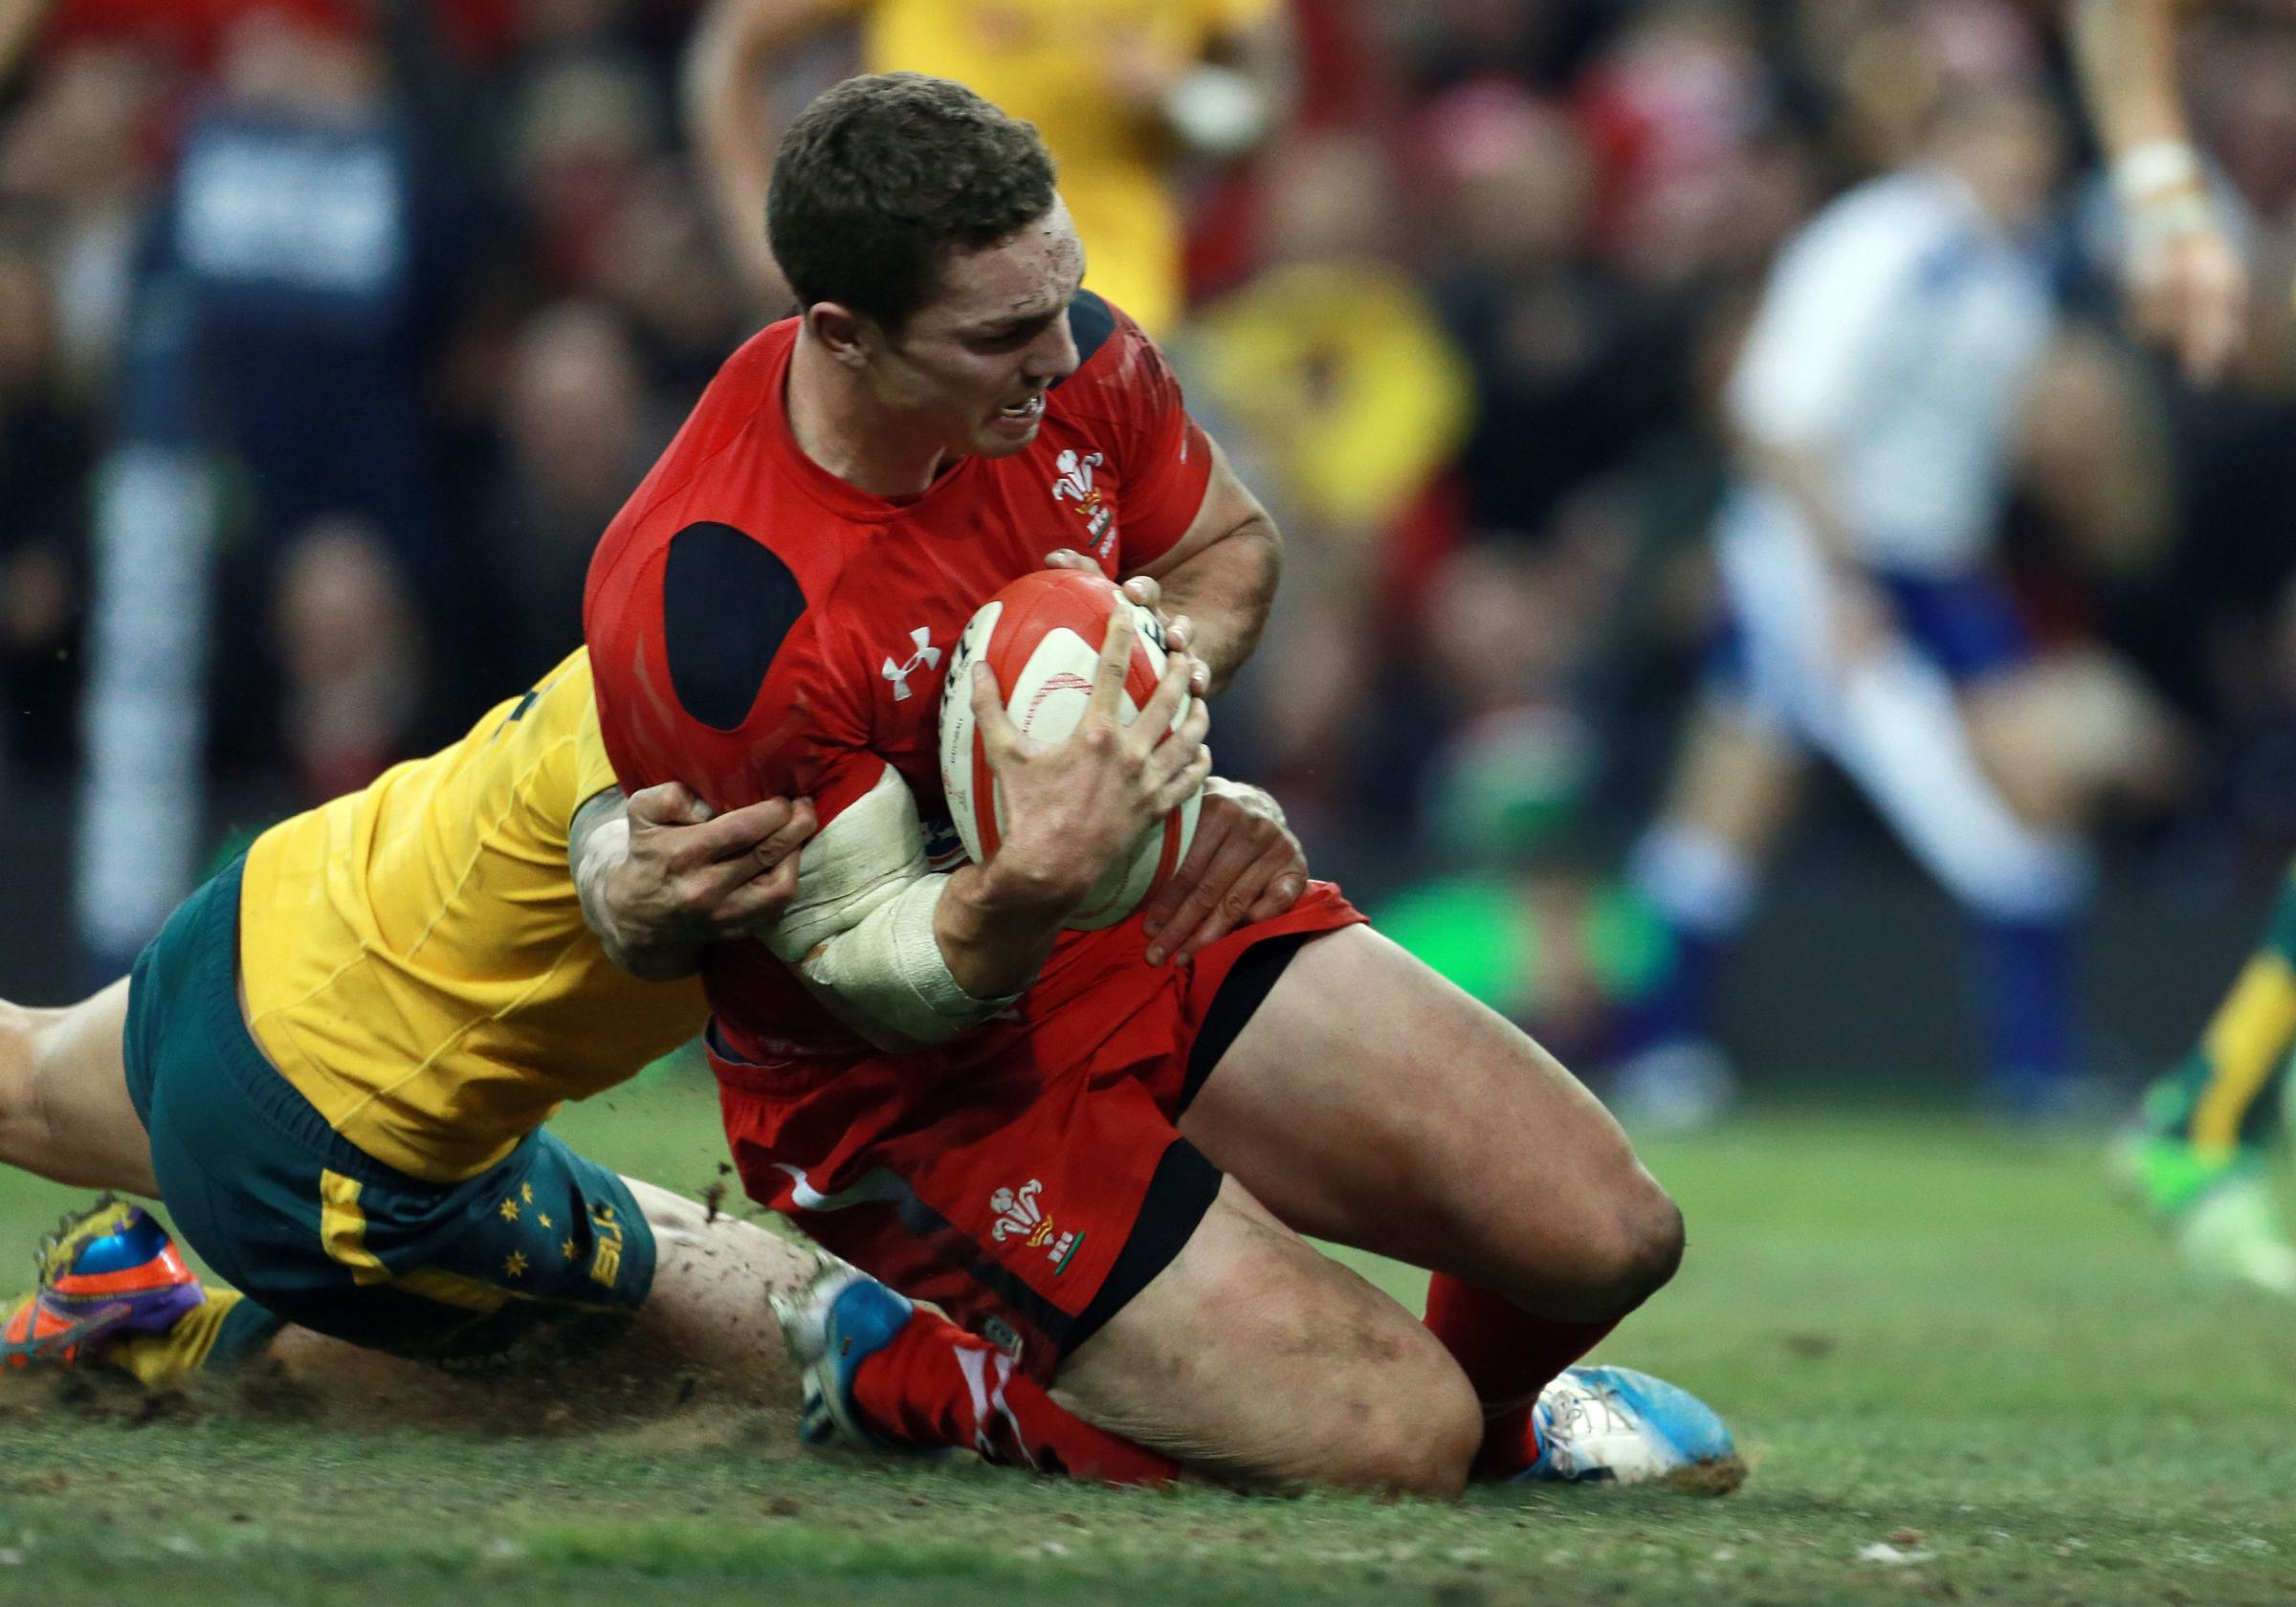 DOUBLE TROUBLE: Wales' George North scores his and his country's second try against Australia